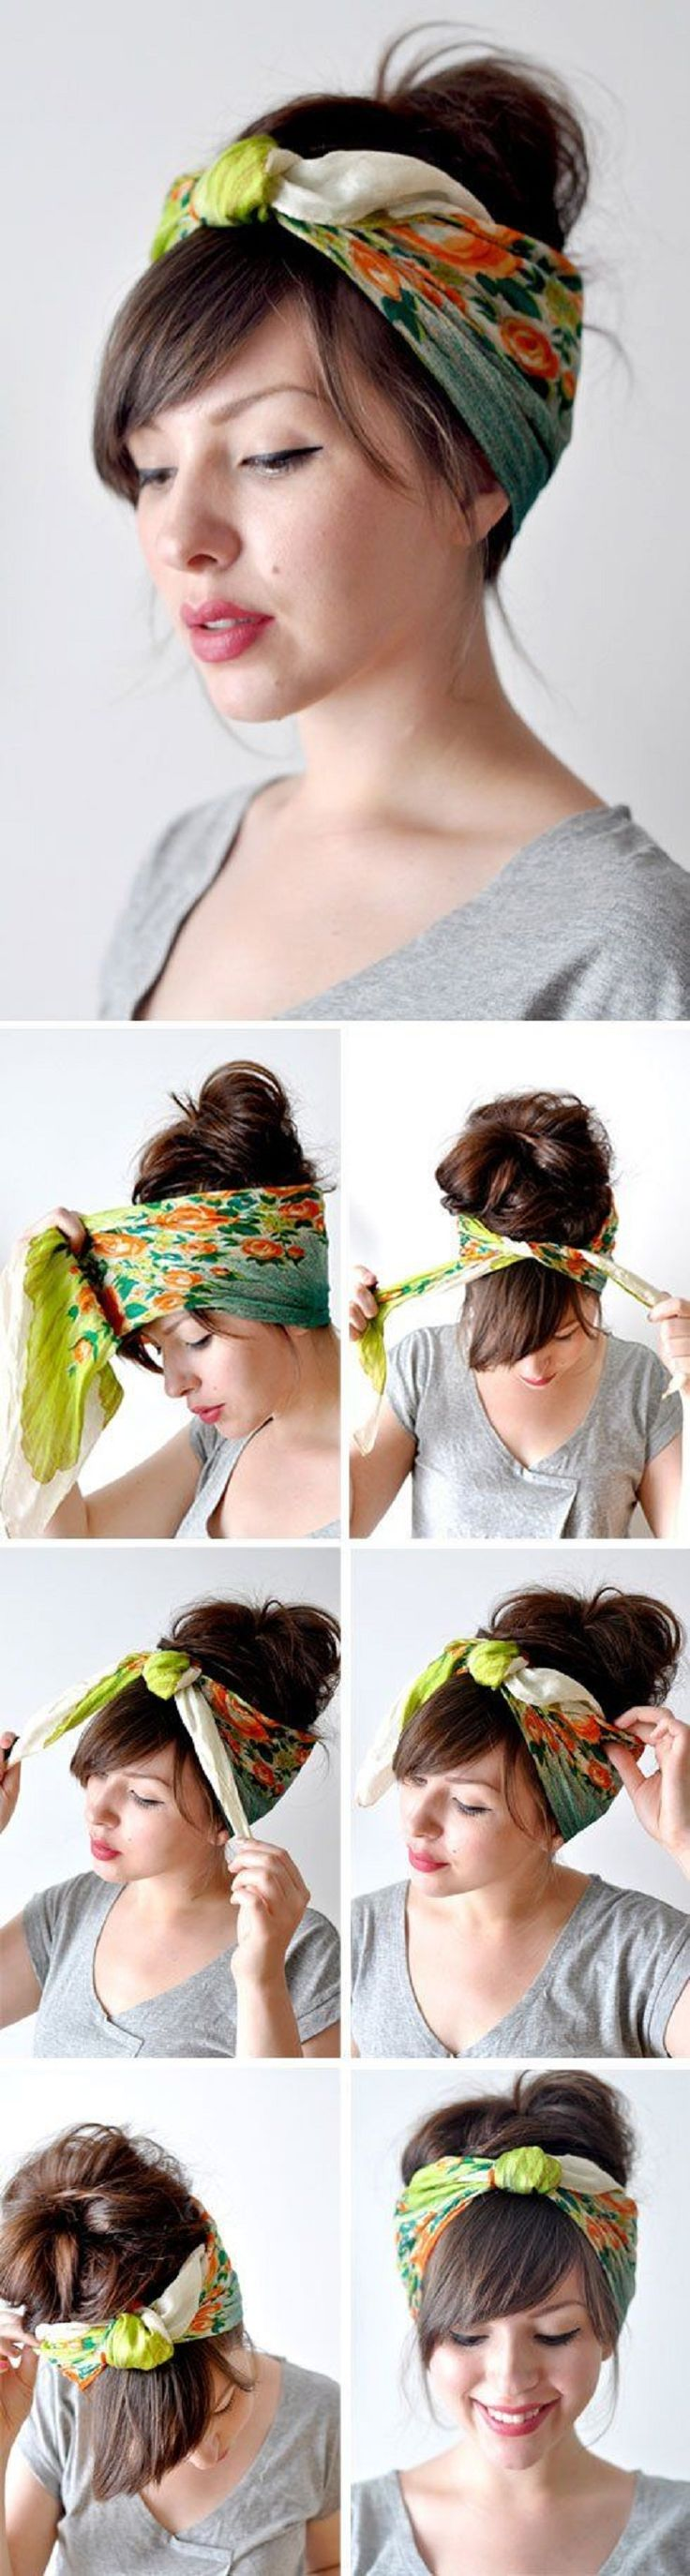 best 25+ hair wrap scarf ideas on pinterest | head wrap scarf